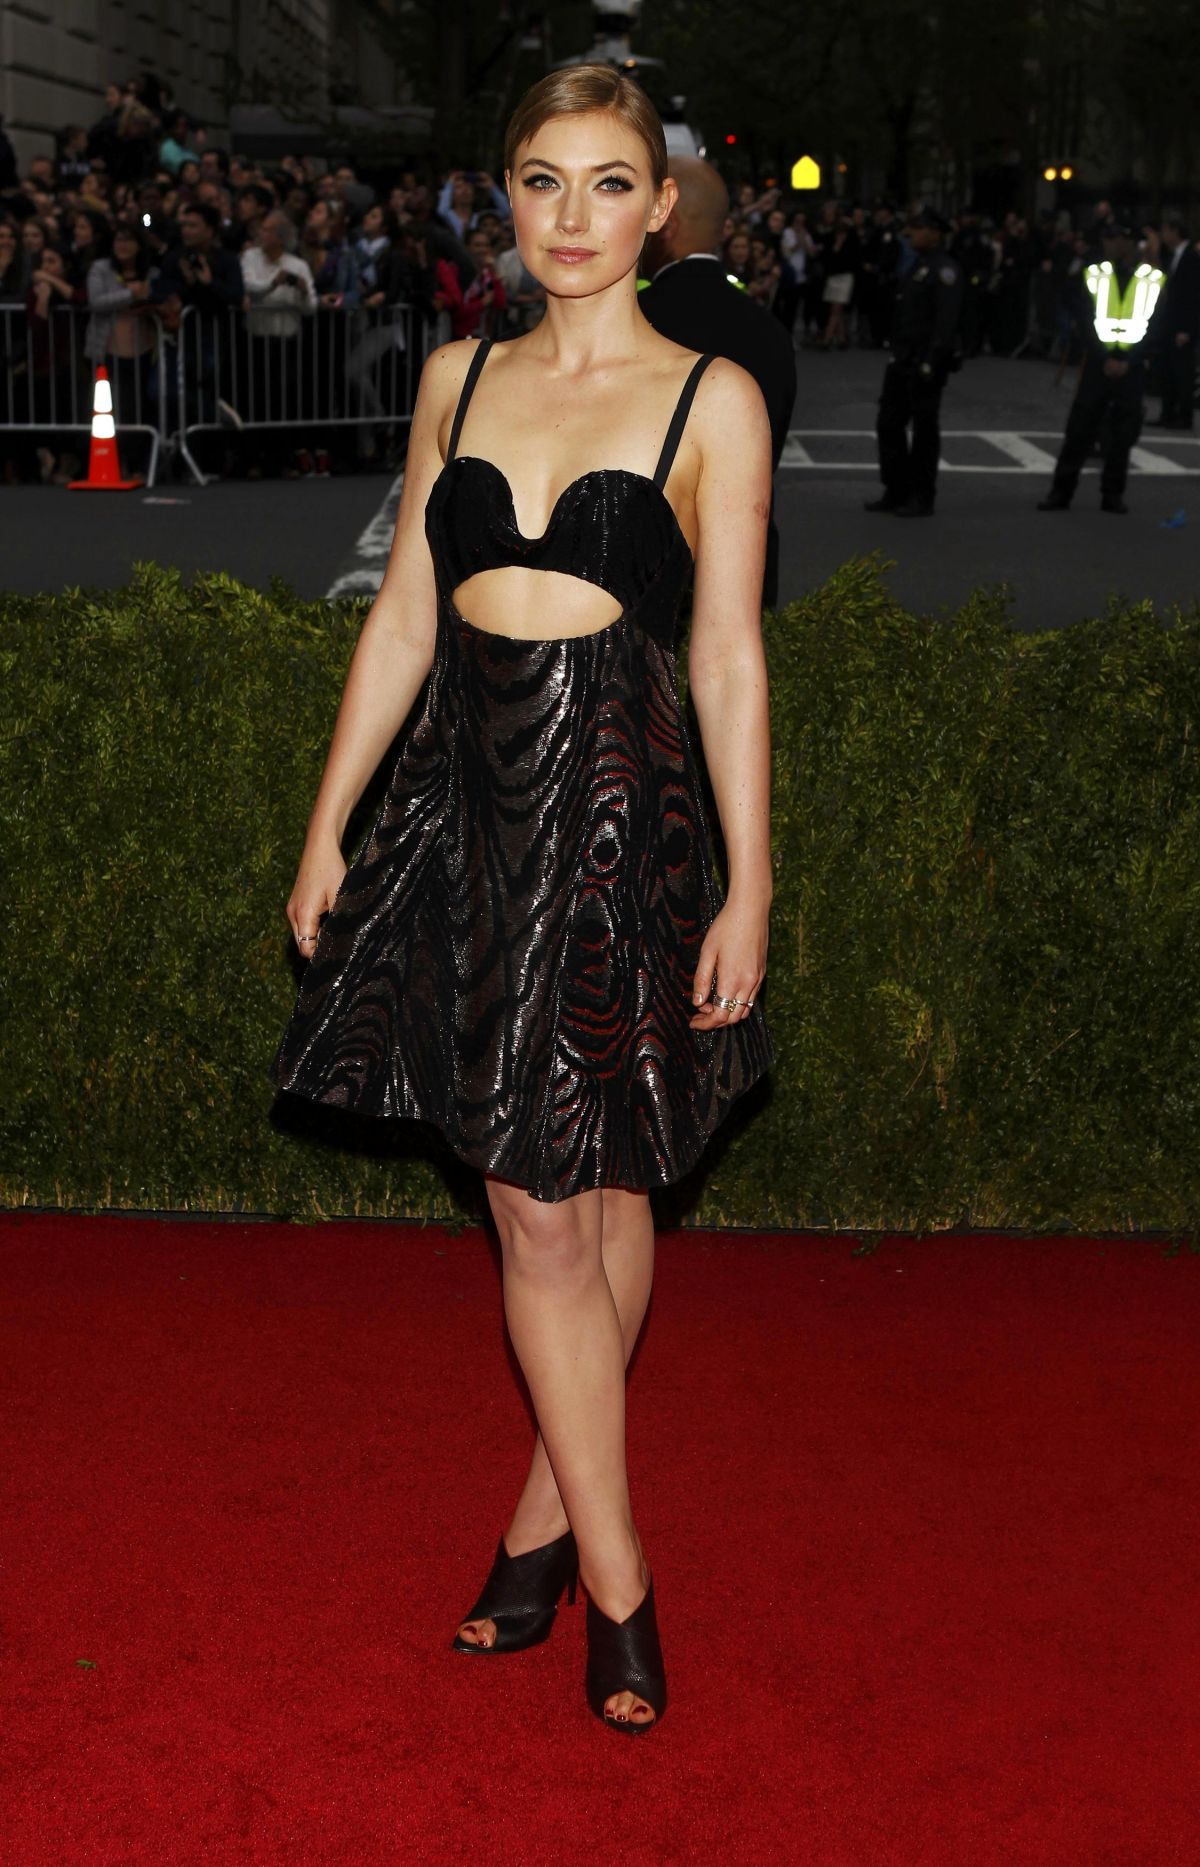 IMOGEN POOTS at MET Gala 2014 in New York